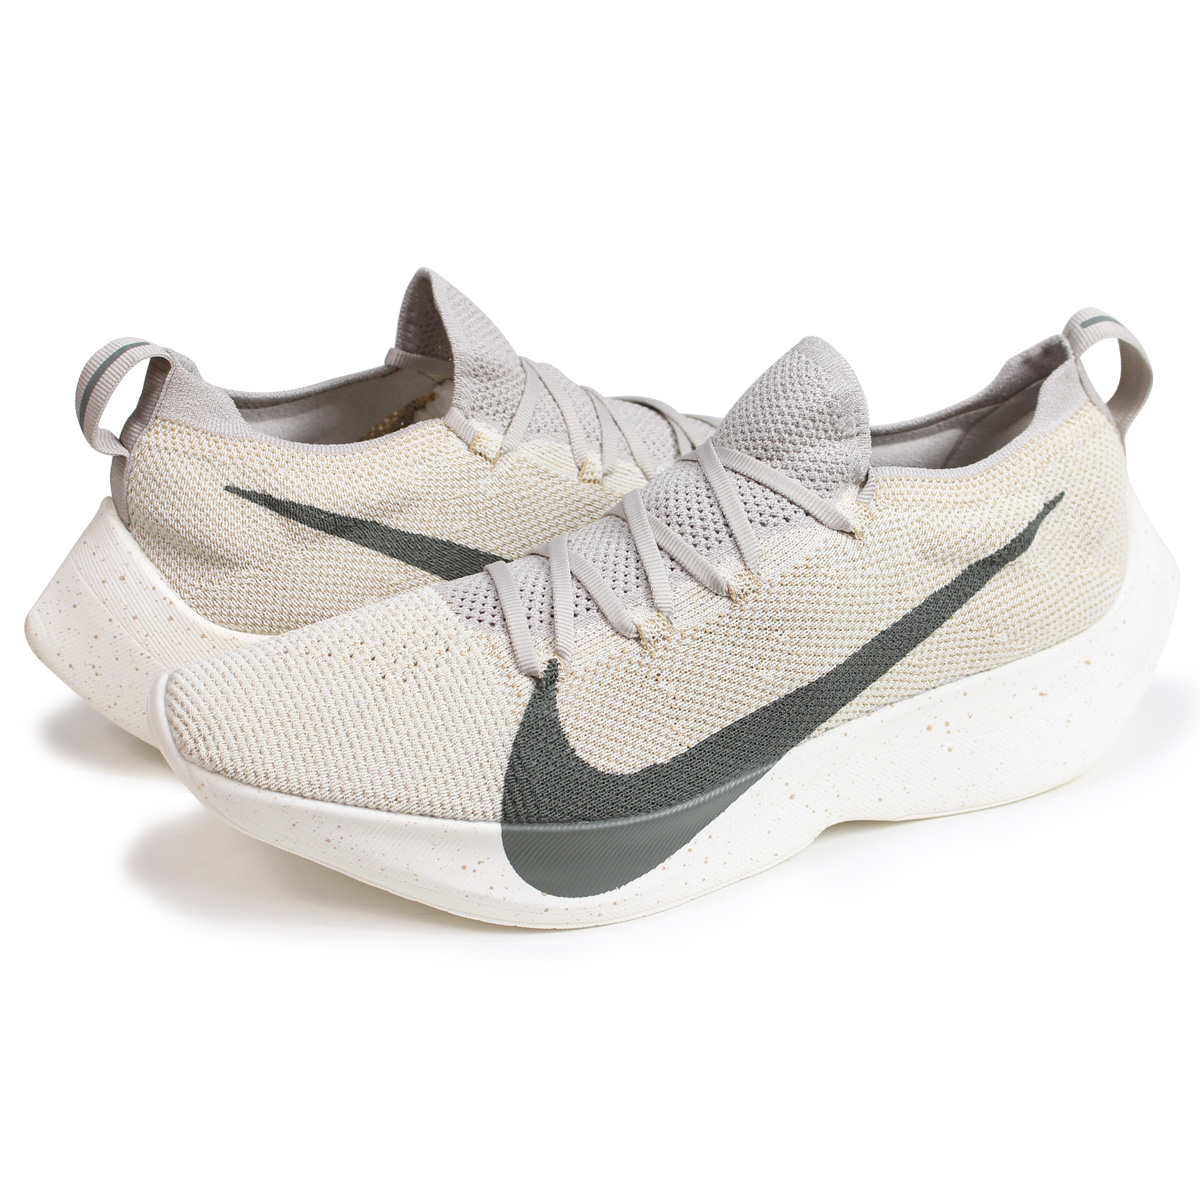 c9be255f2c4c Whats up Sports  NIKE VAPOR STREET FLYKNIT Nike vapor street ...